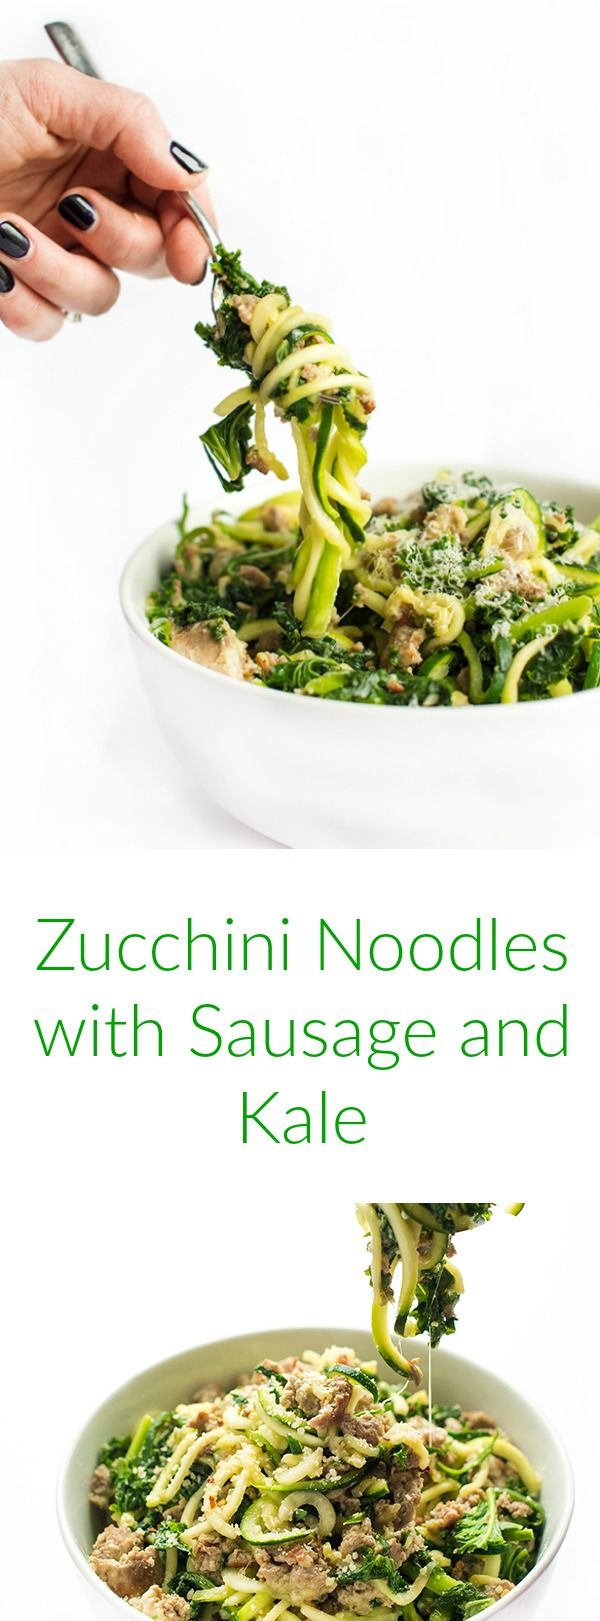 One of my all time favorite high protein and low carbohydrate dinner recipes is zucchini noodles tossed with Italian sausage and kale. Easy to make, kid-friendly and packed with flavor, it is always a family favorite